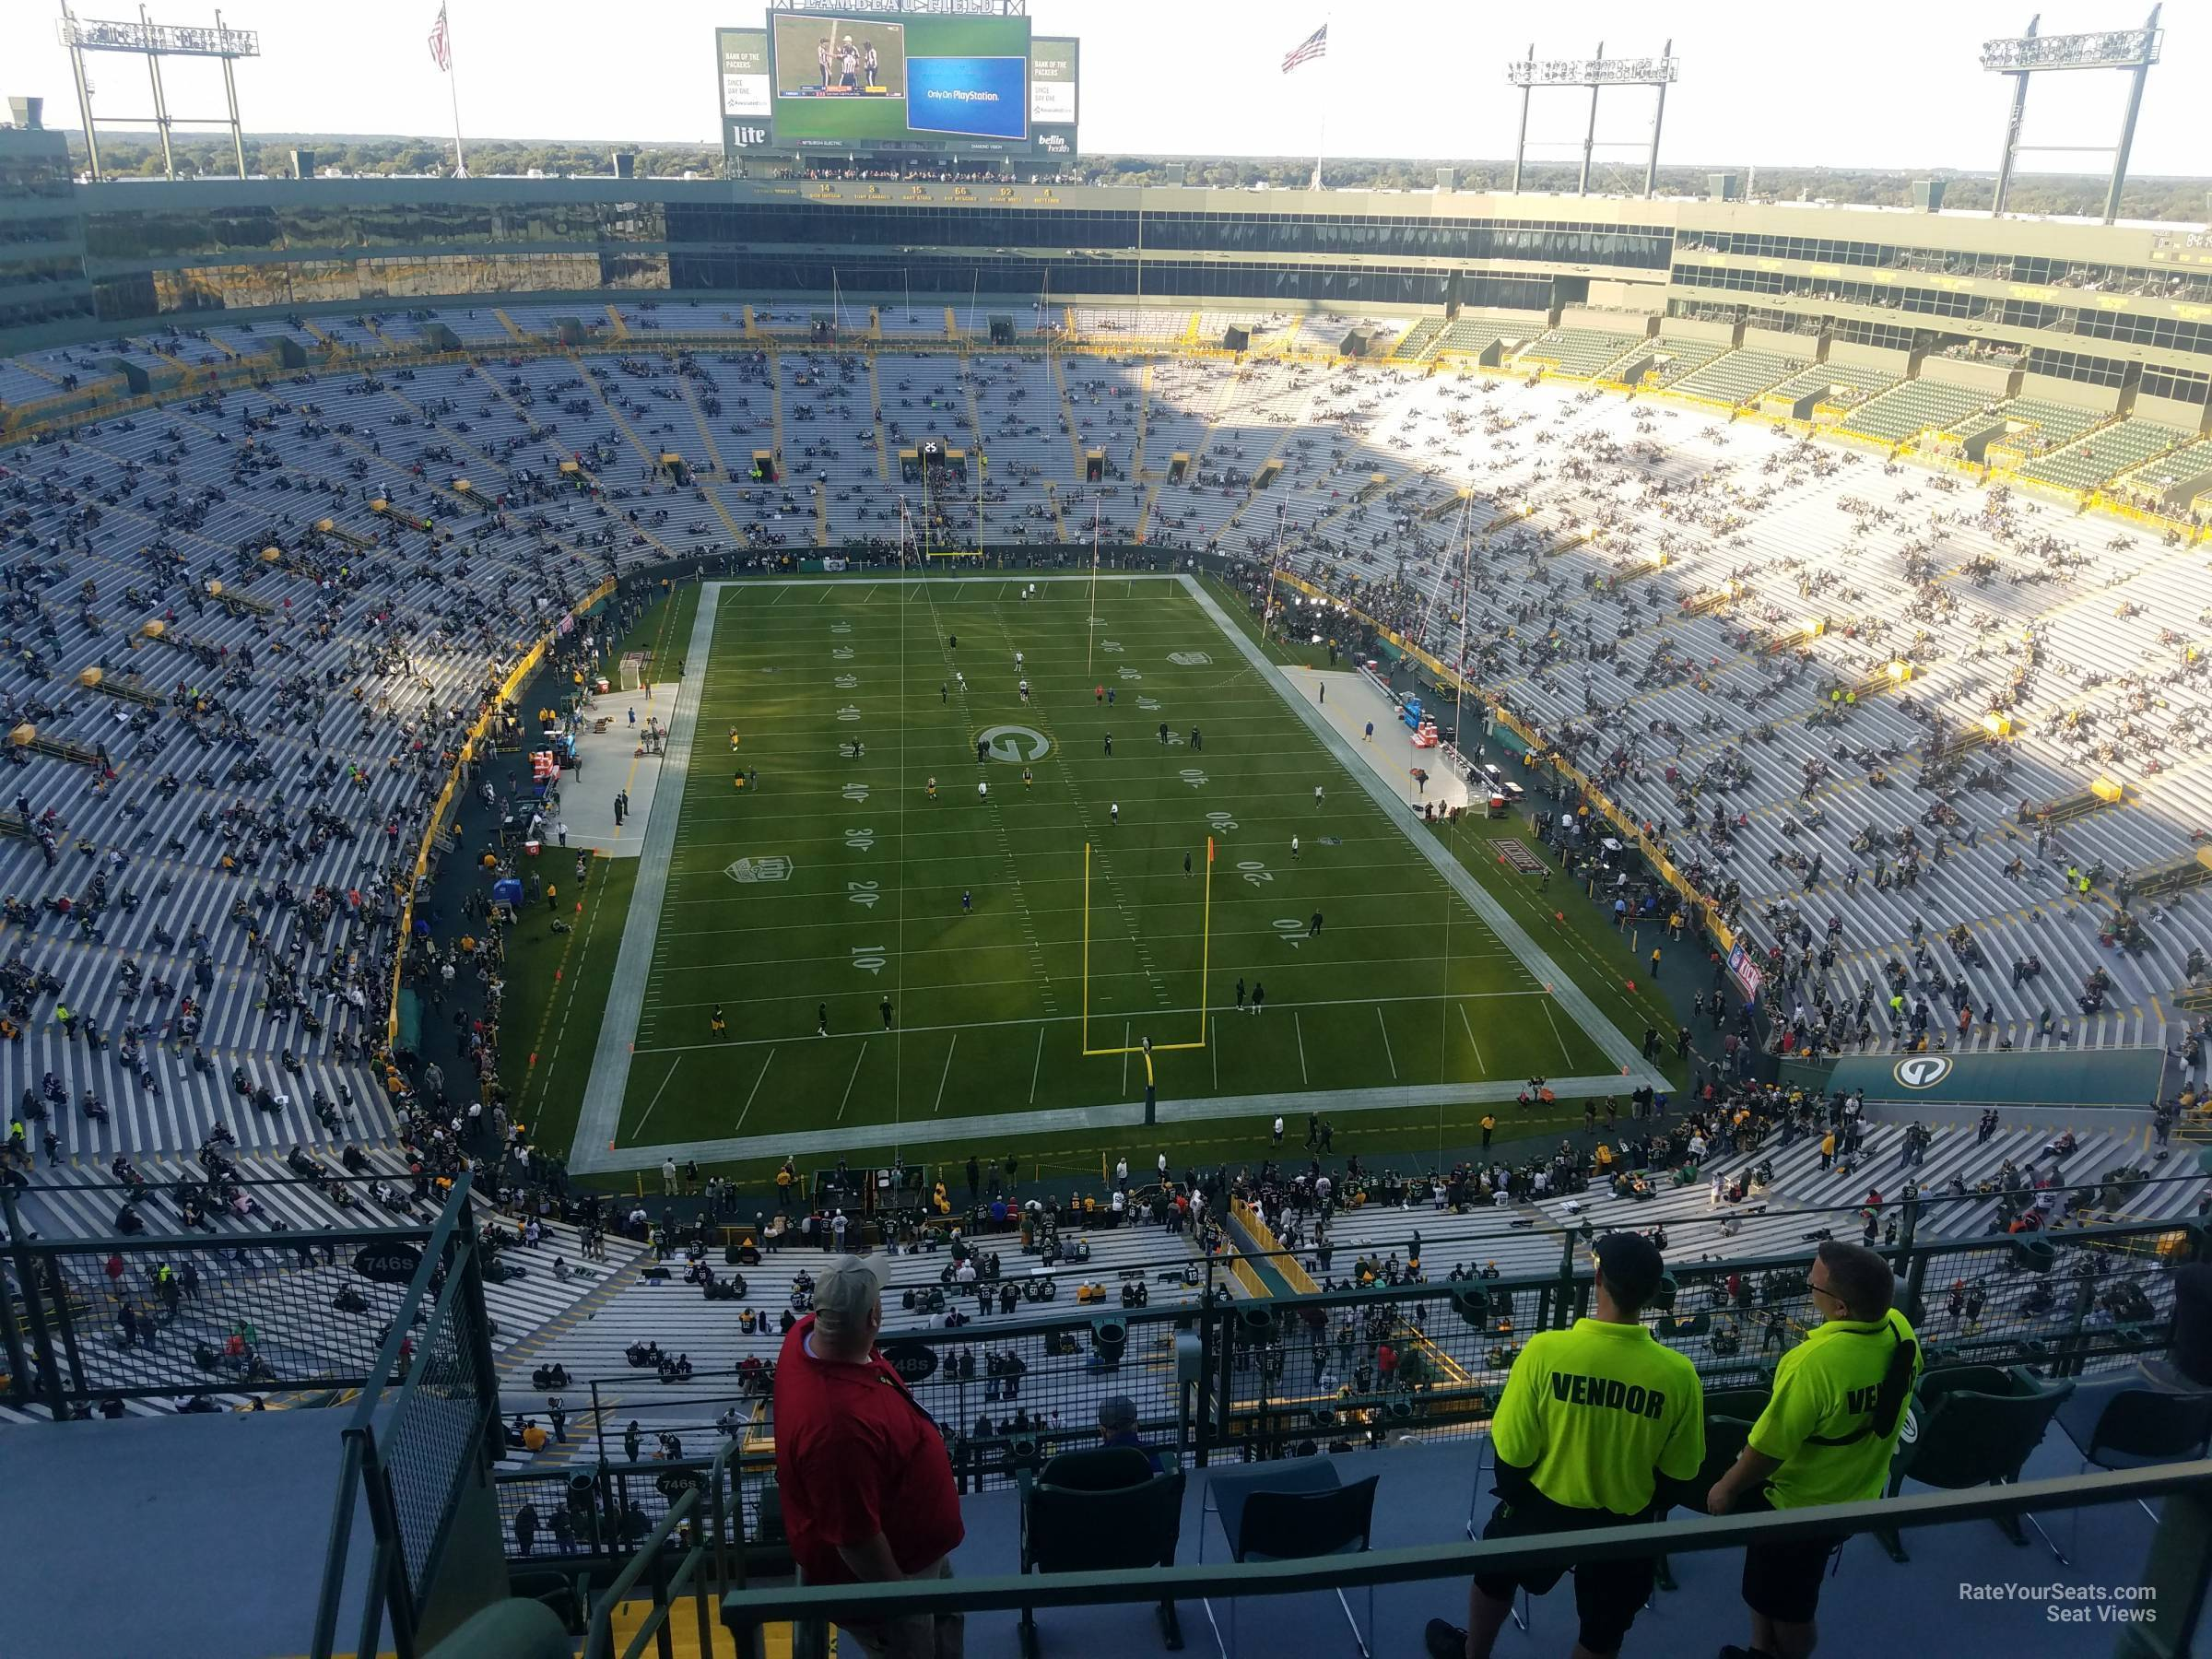 Section 748S seat view